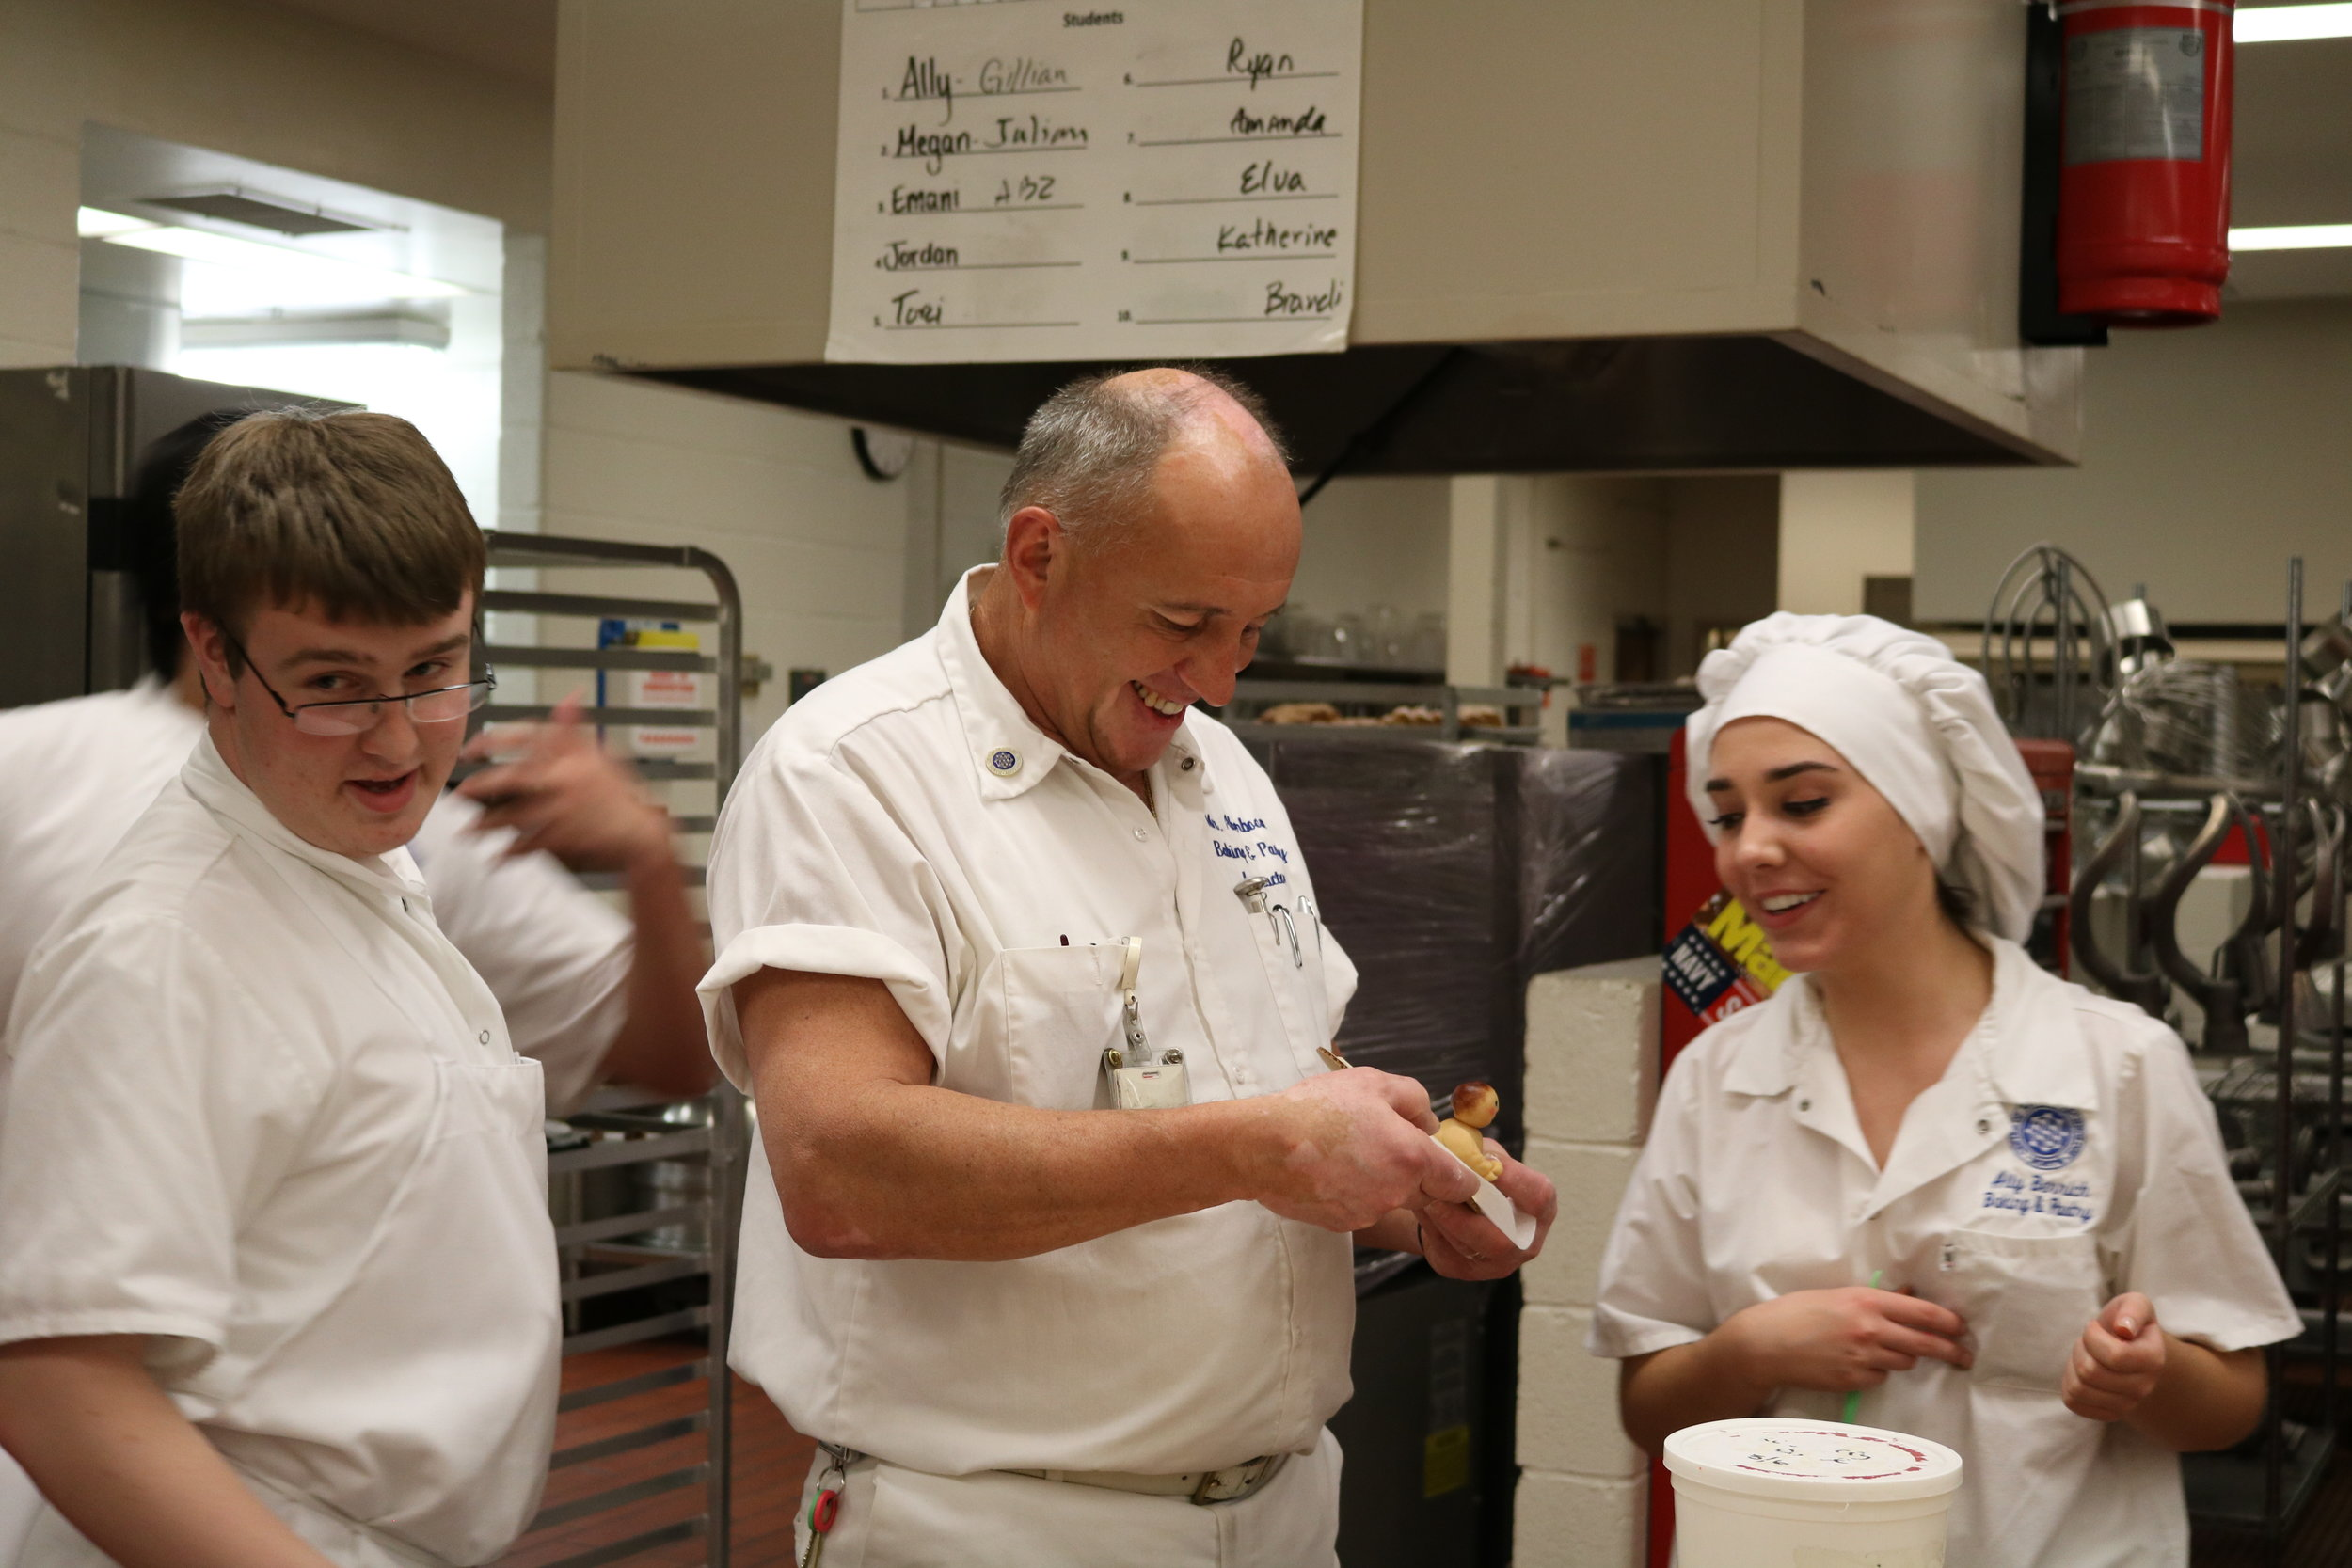 Peter Akerboom, center, makes a marzipan joke with Ally Berrich in a baking and pastry course at the Center of Applied Technology North in Severn, Md., on May 11, 2016